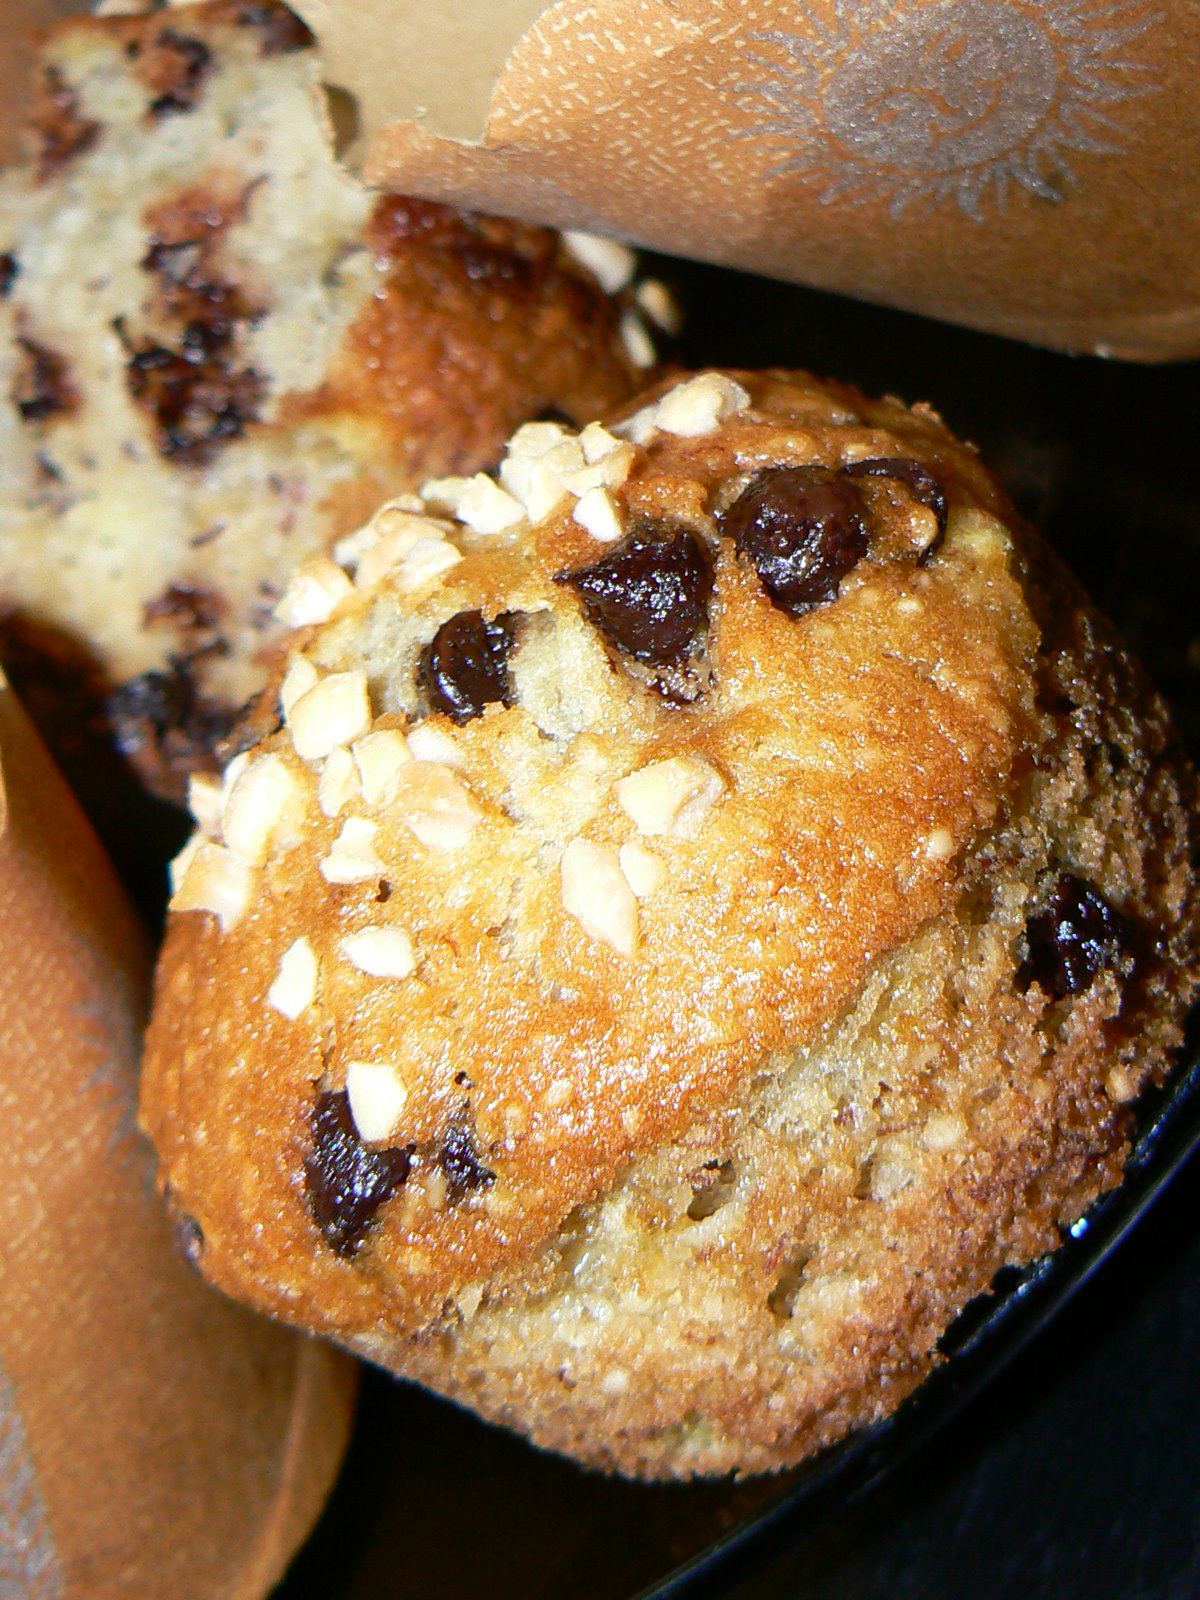 [Chocolate+Chips+&+Almond+Muffin-2.jpg]